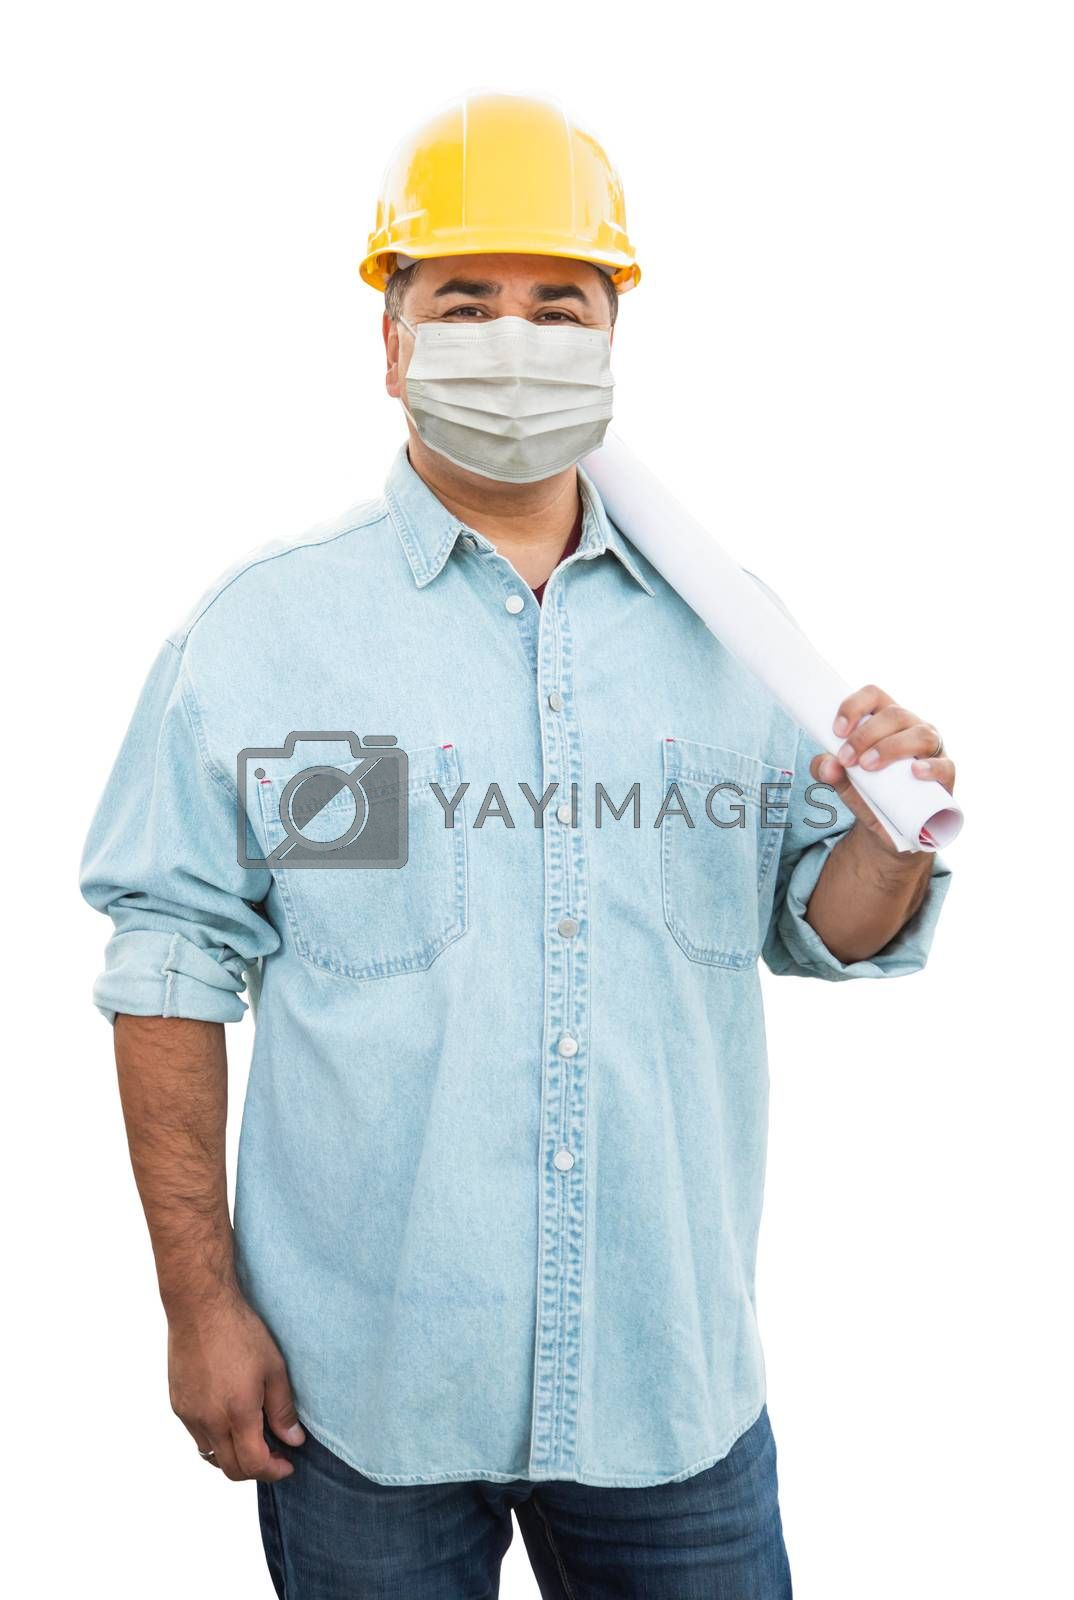 Male Contractor In Hard Hat Wearing Medical Face Mask During Coronavirus Pandemic Isolated on White.